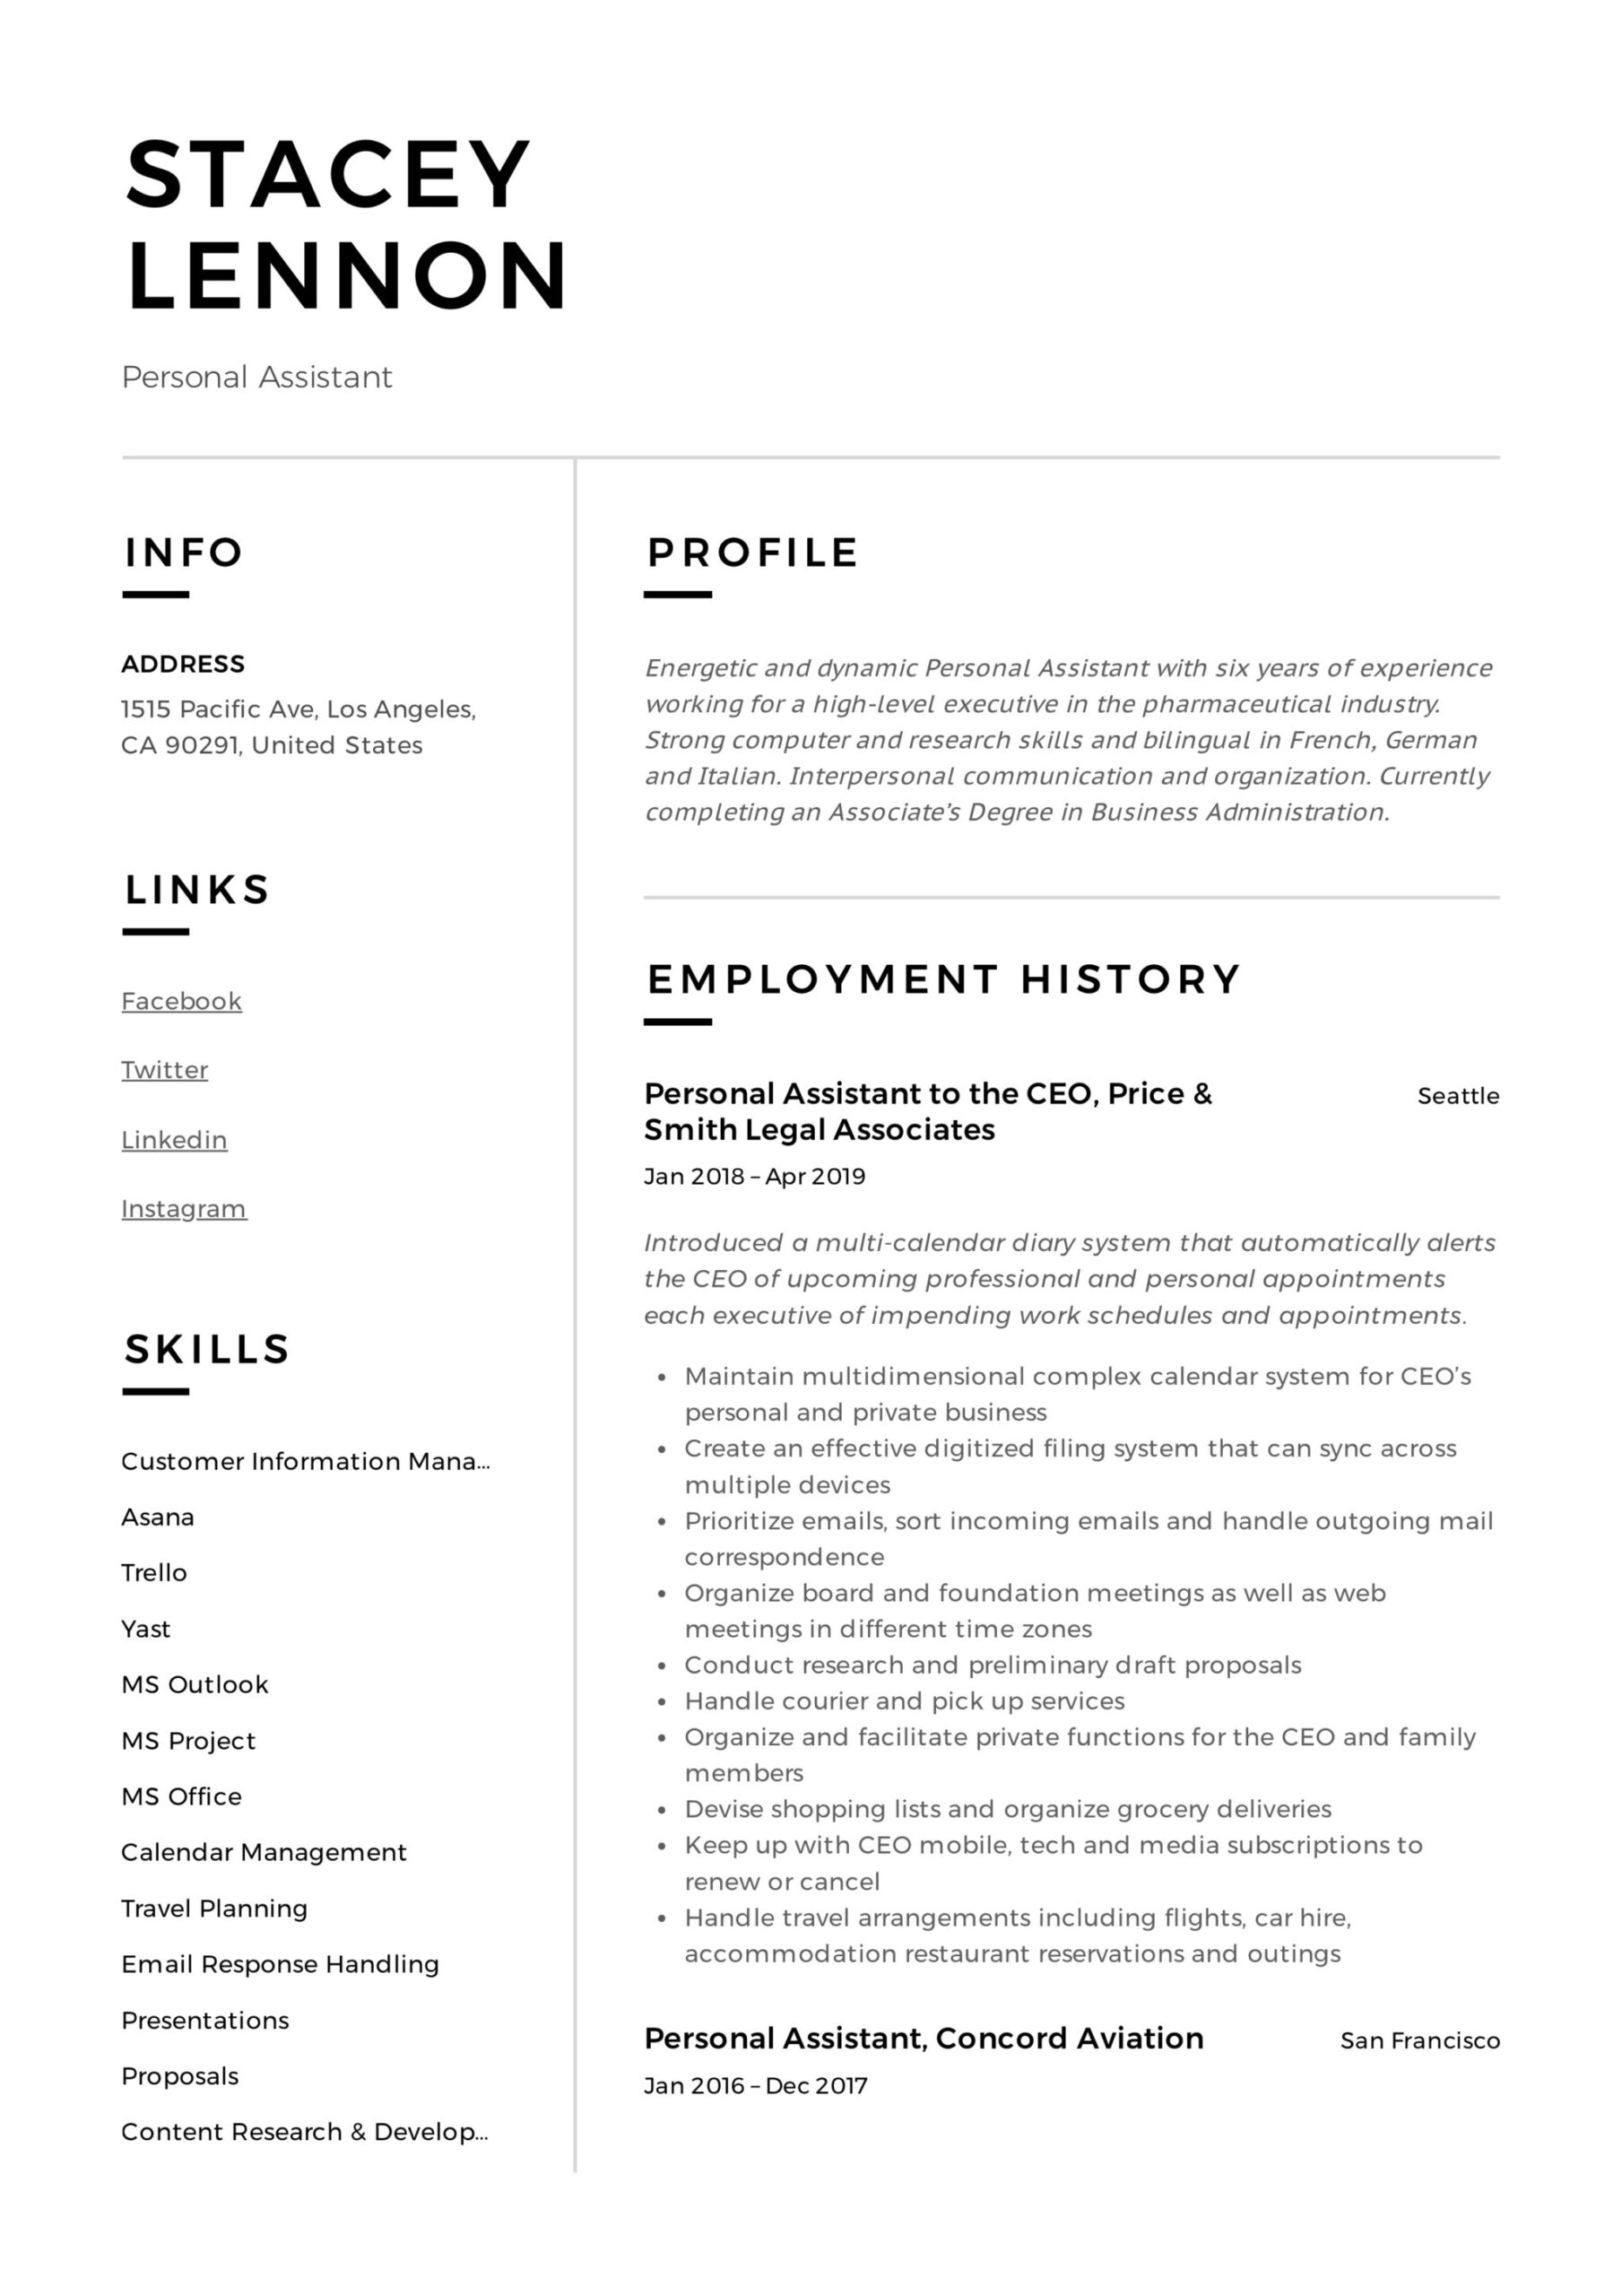 personal assistant resume writing guide templates pdf job cto examples plant for Resume Personal Assistant Job Resume